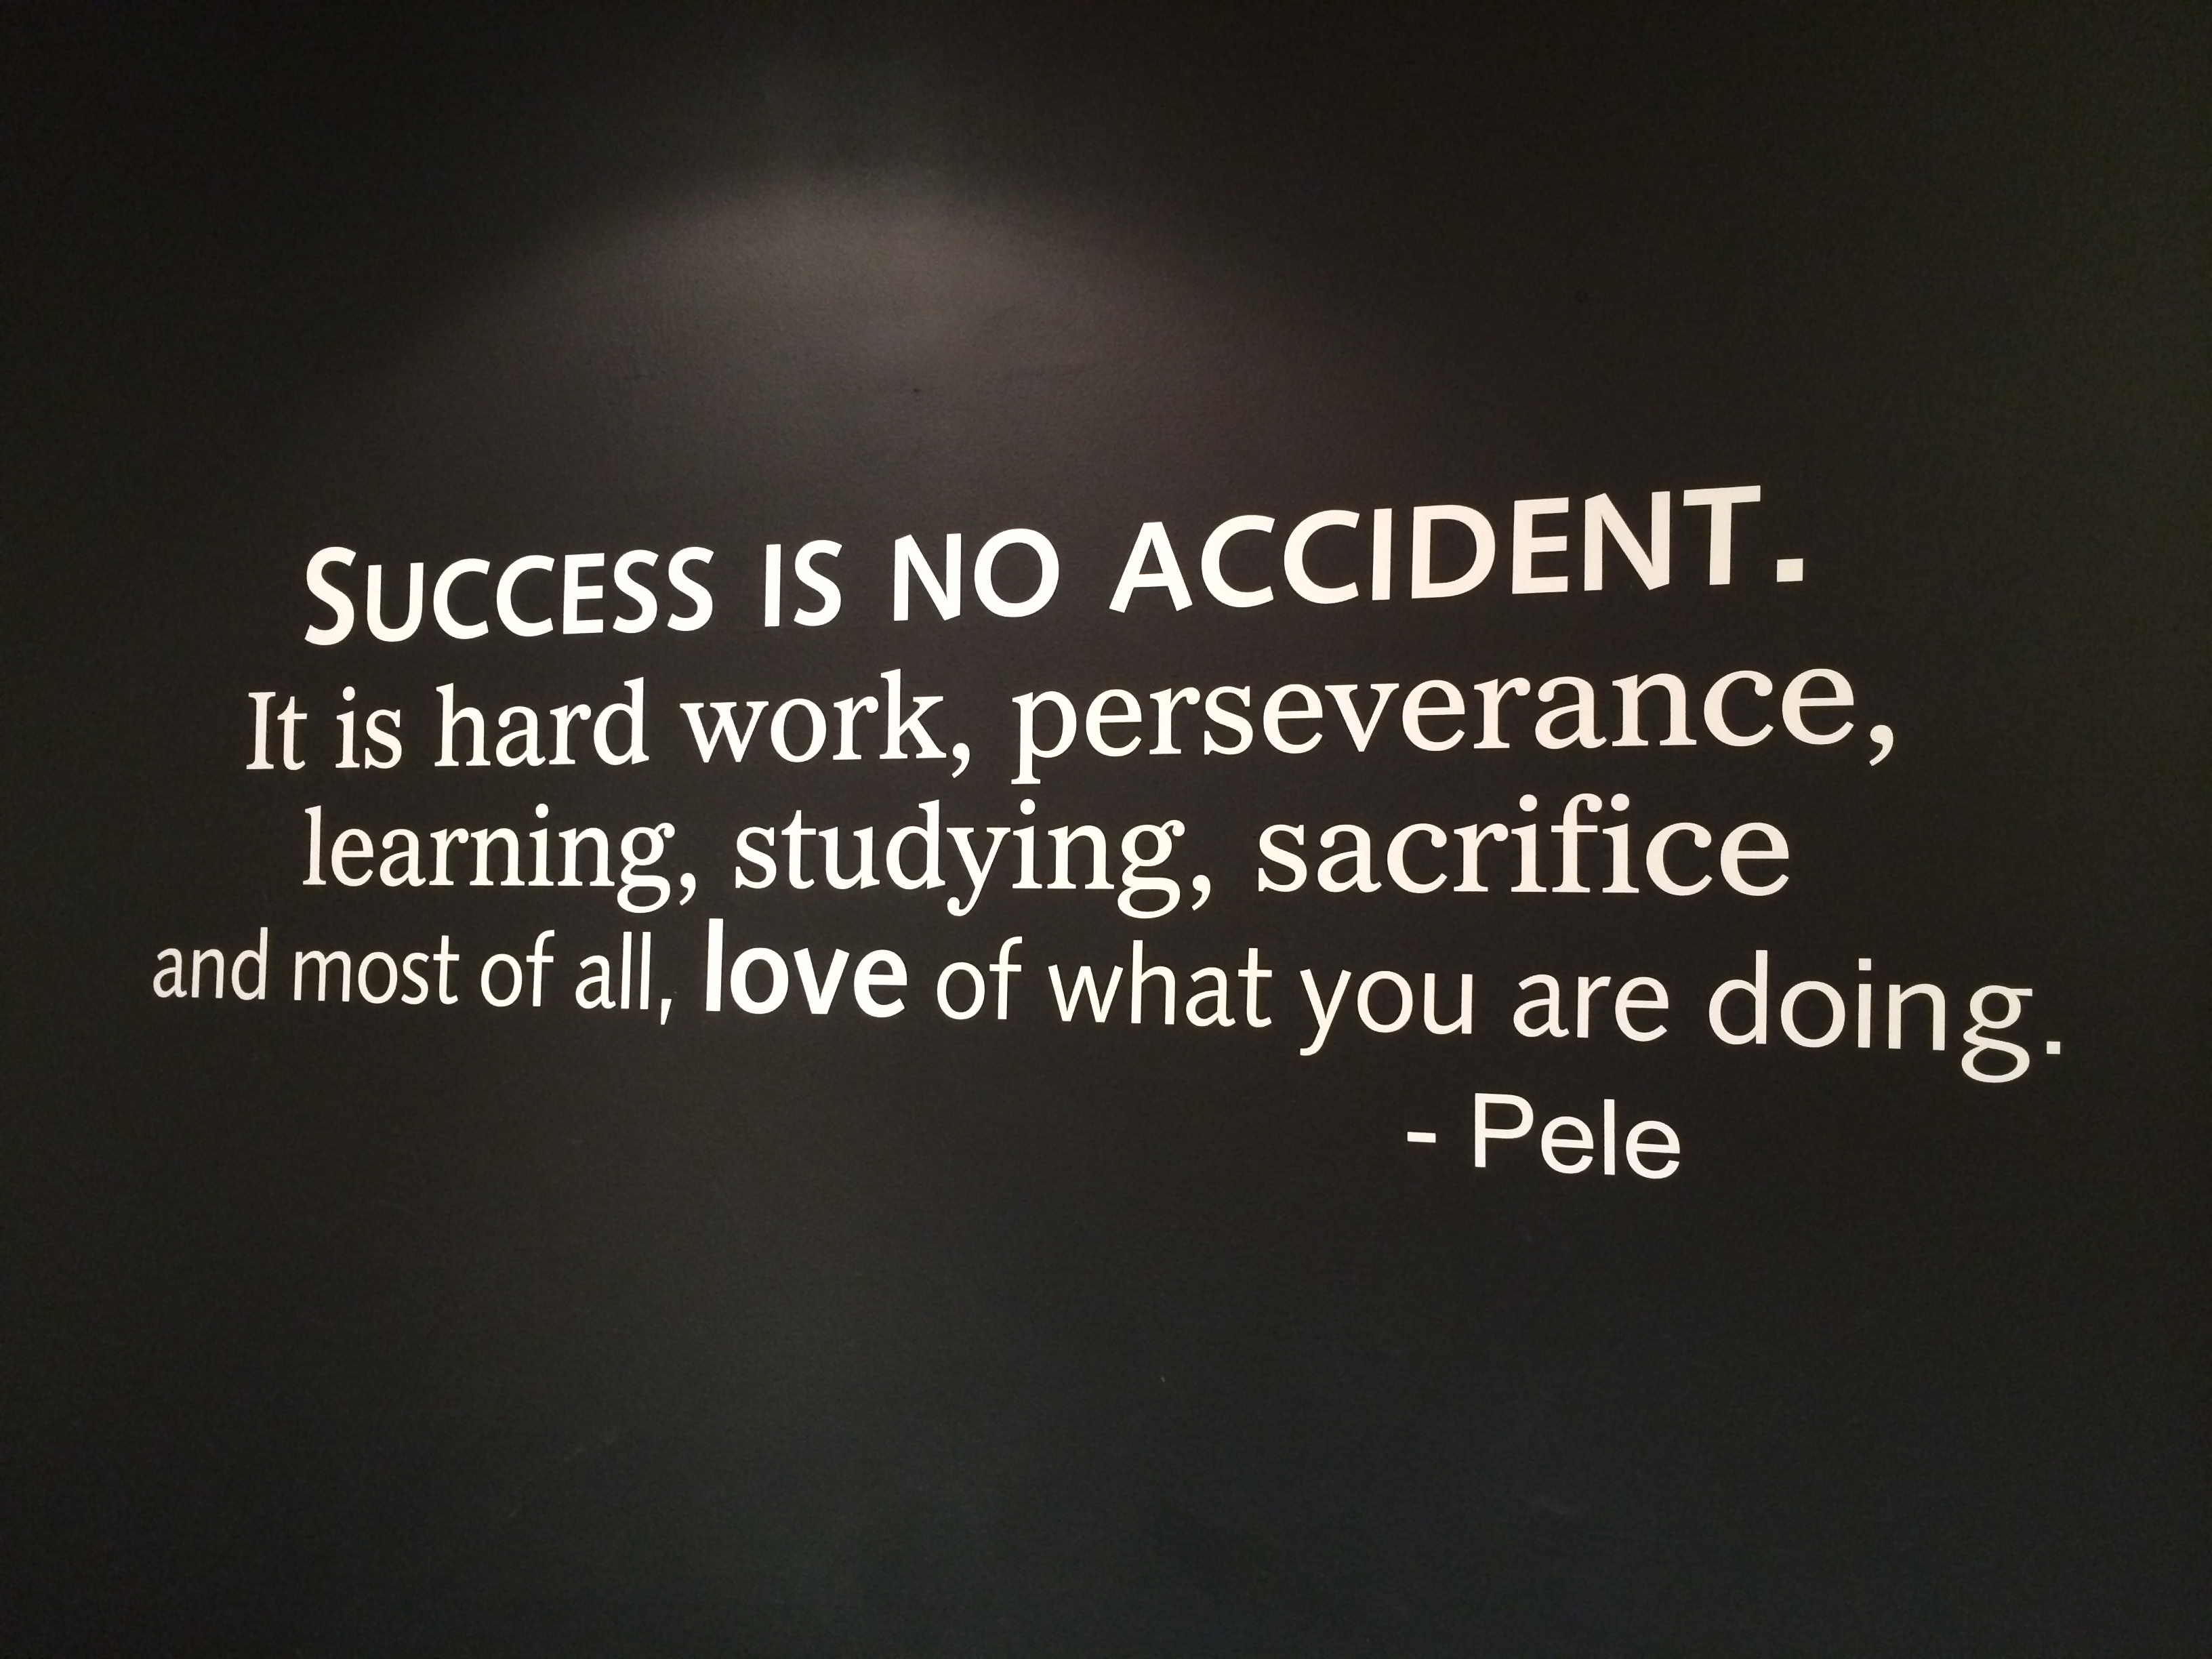 Pele Quotes About Success. QuotesGram